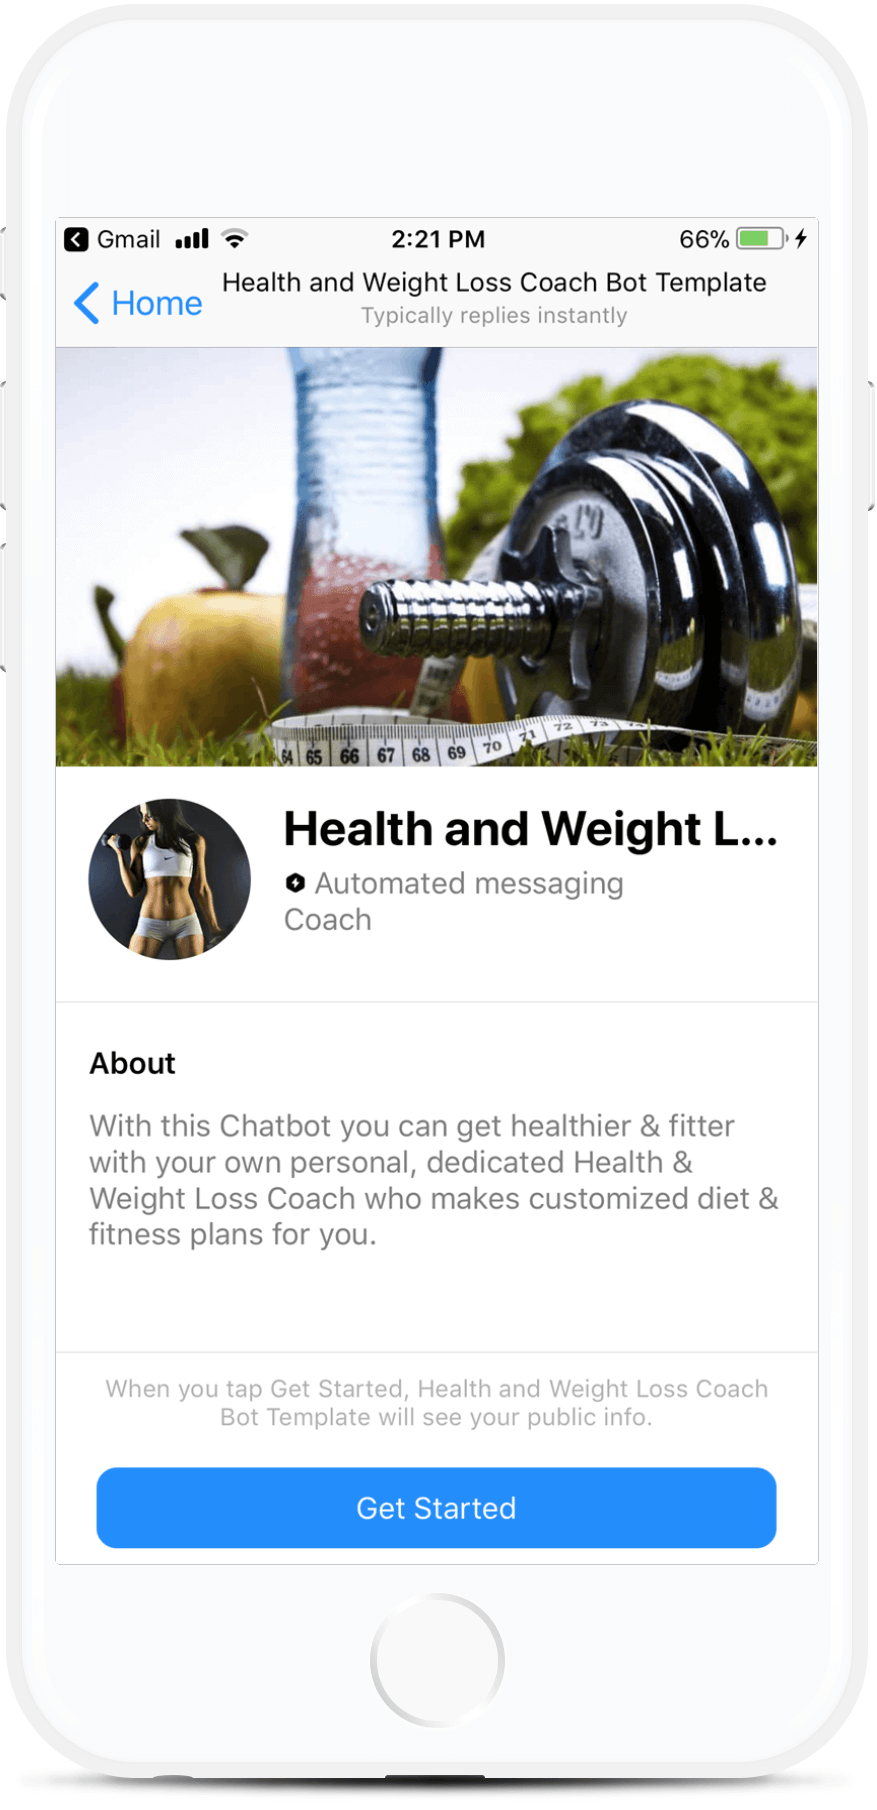 Health and Weight Loss Coach Bot Template